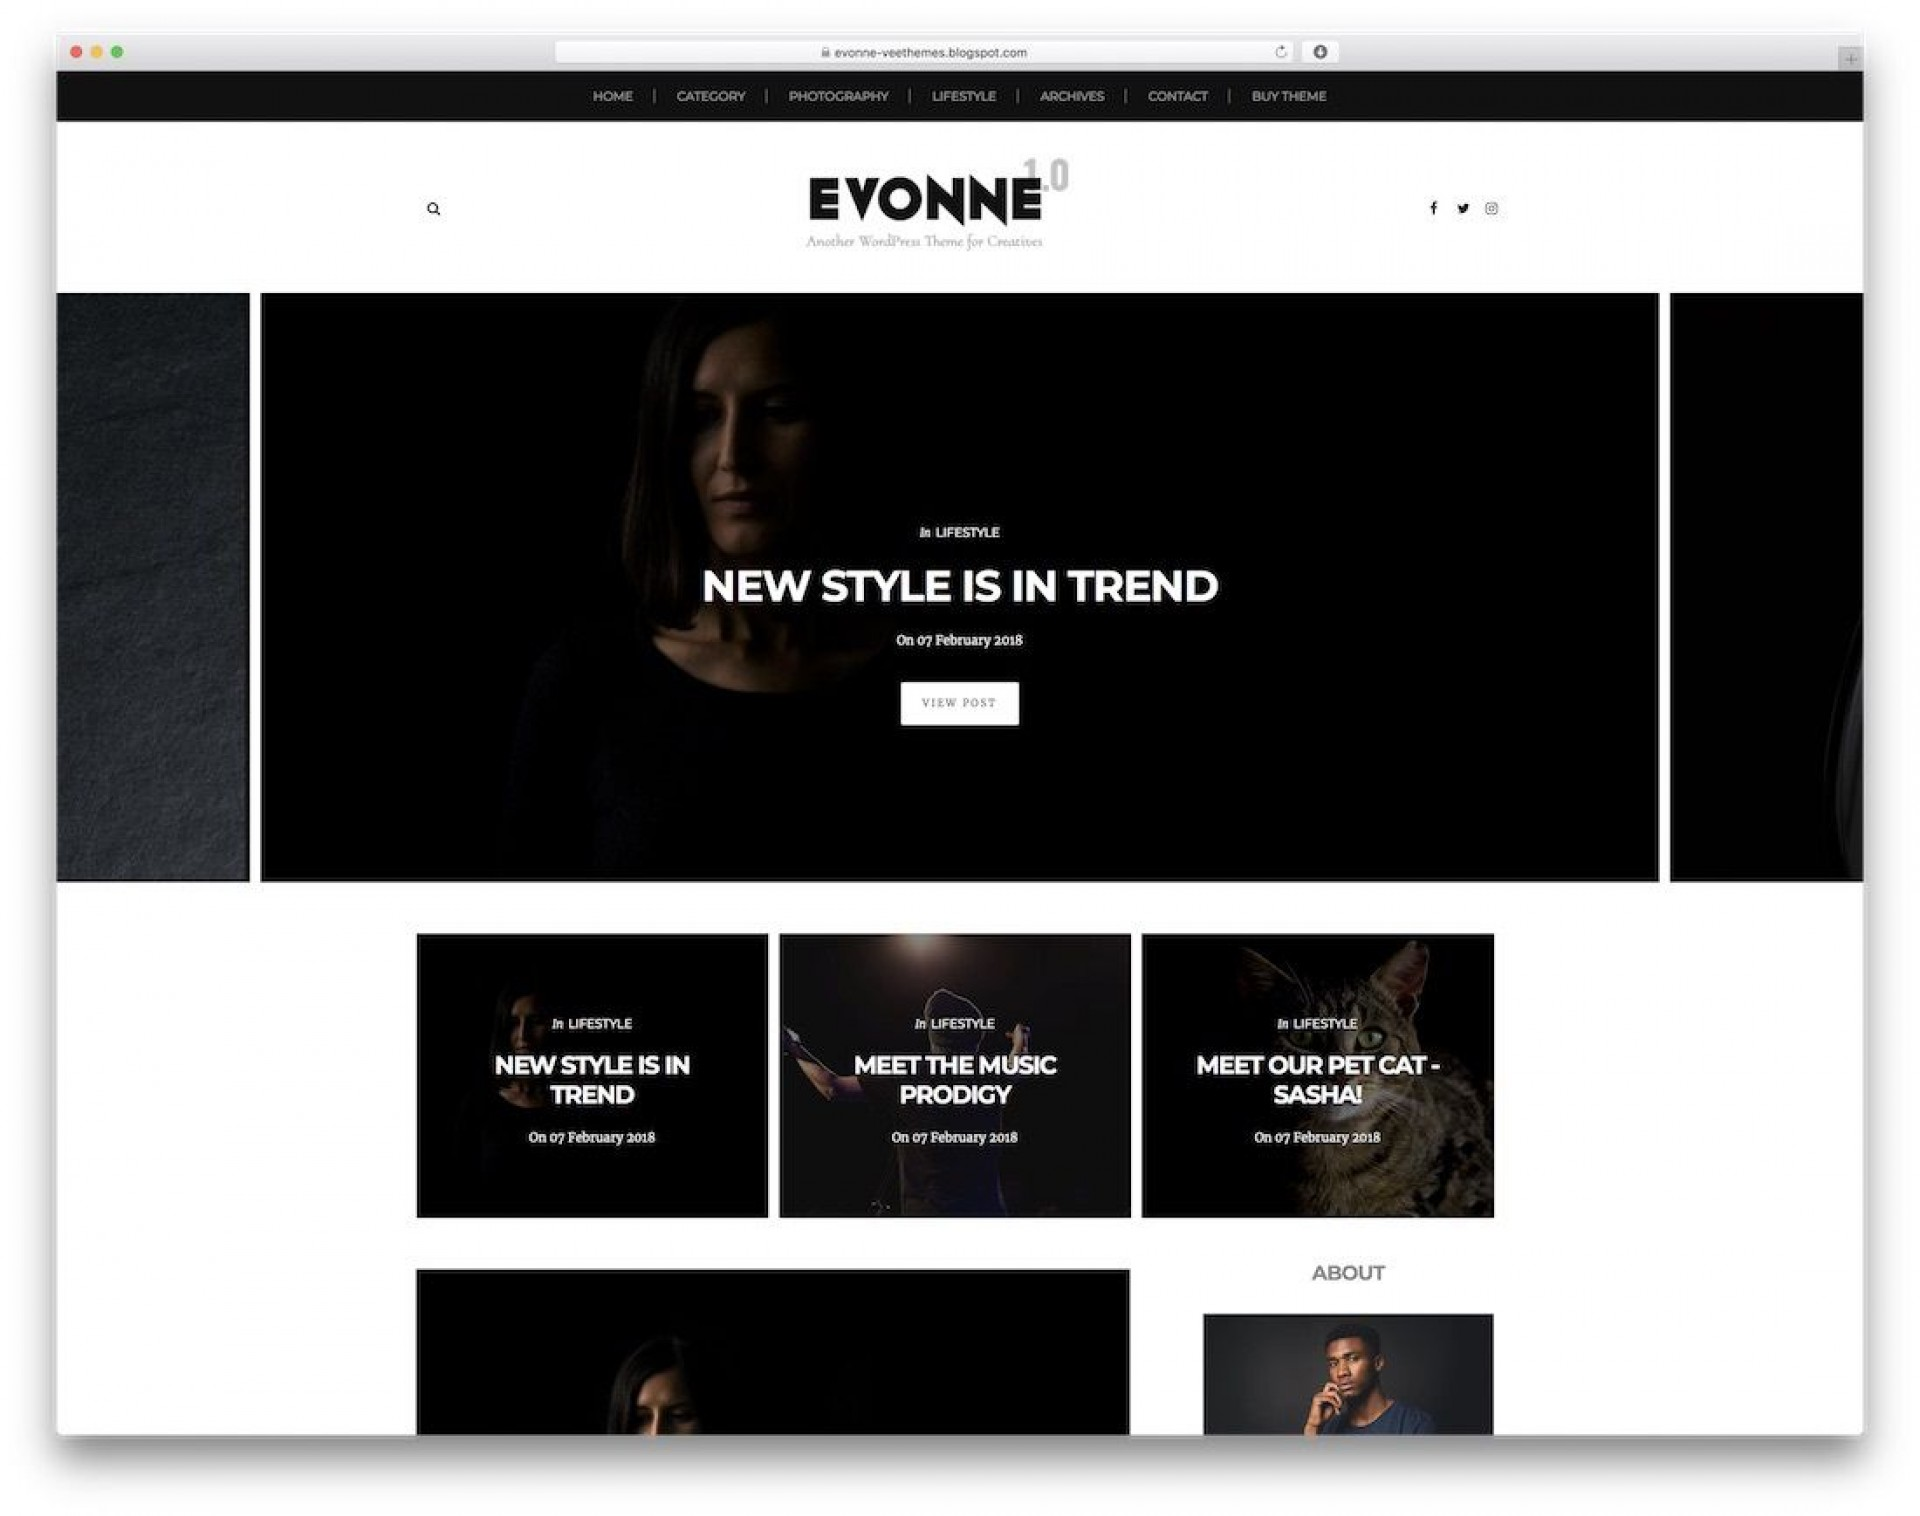 002 Sensational Top Free Responsive Blogger Template Picture  Templates Best For Education 2020 20191920